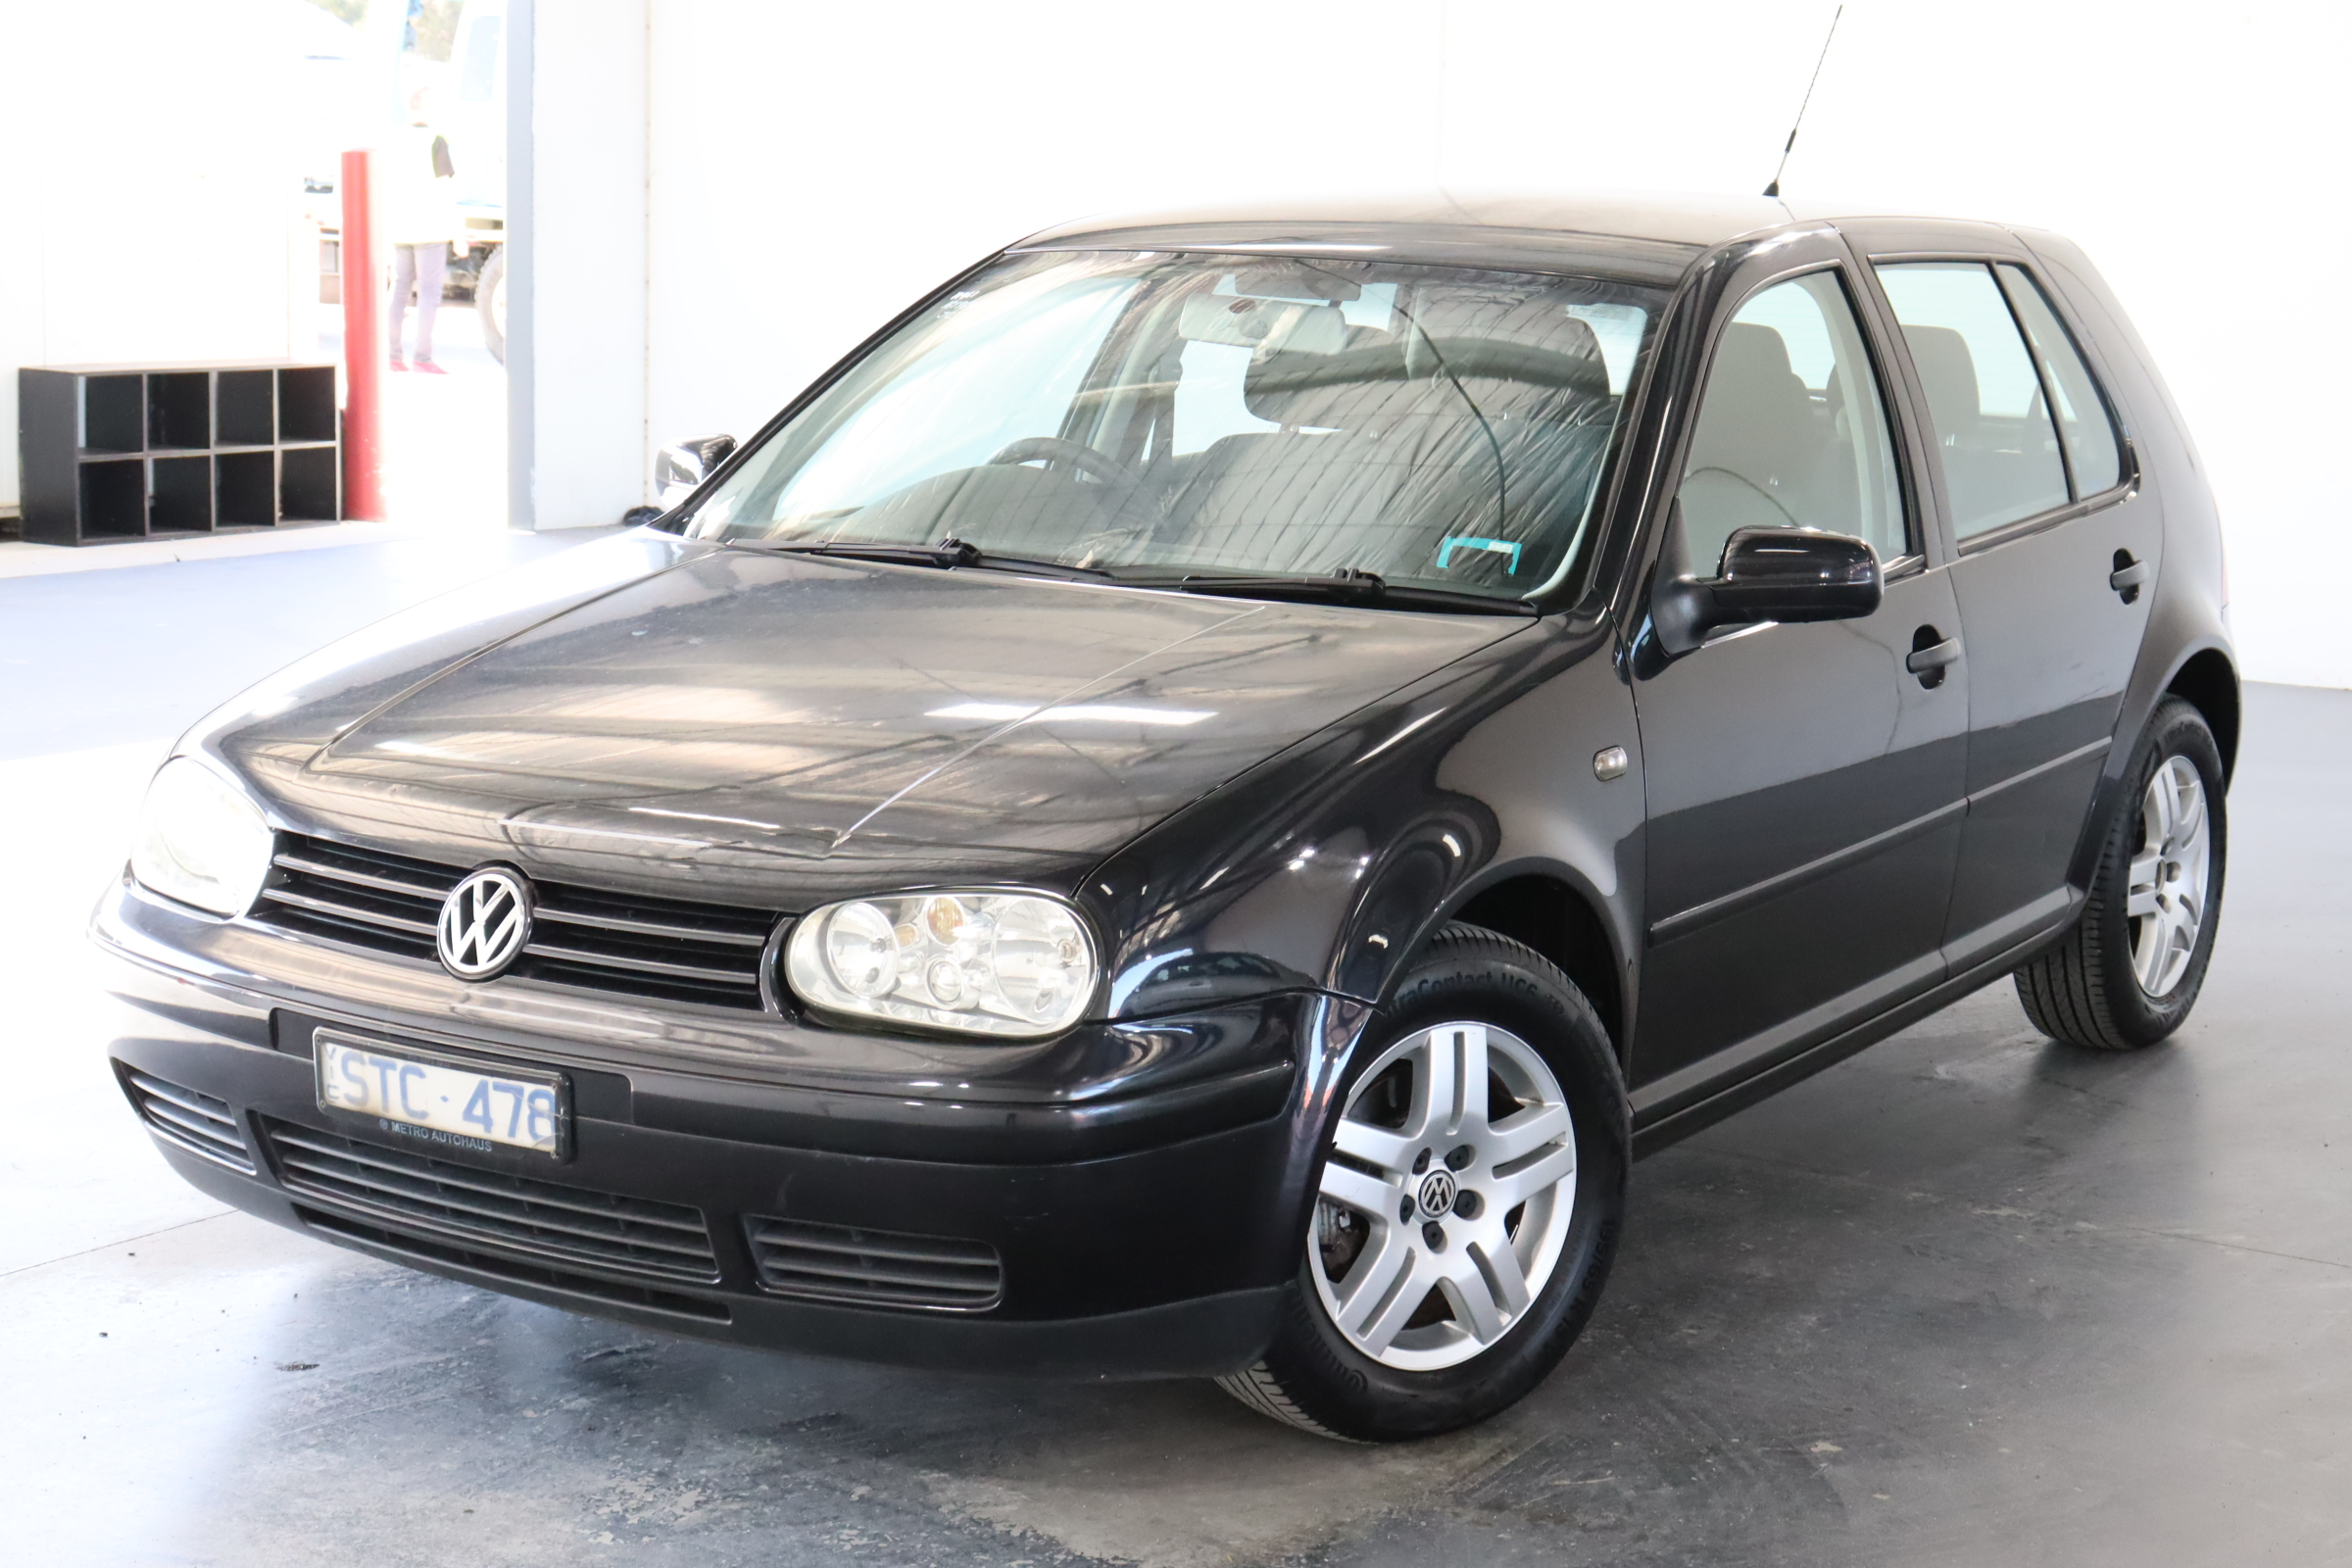 2004 Volkswagen Golf 2.0 Generation A4 Manual Hatchback